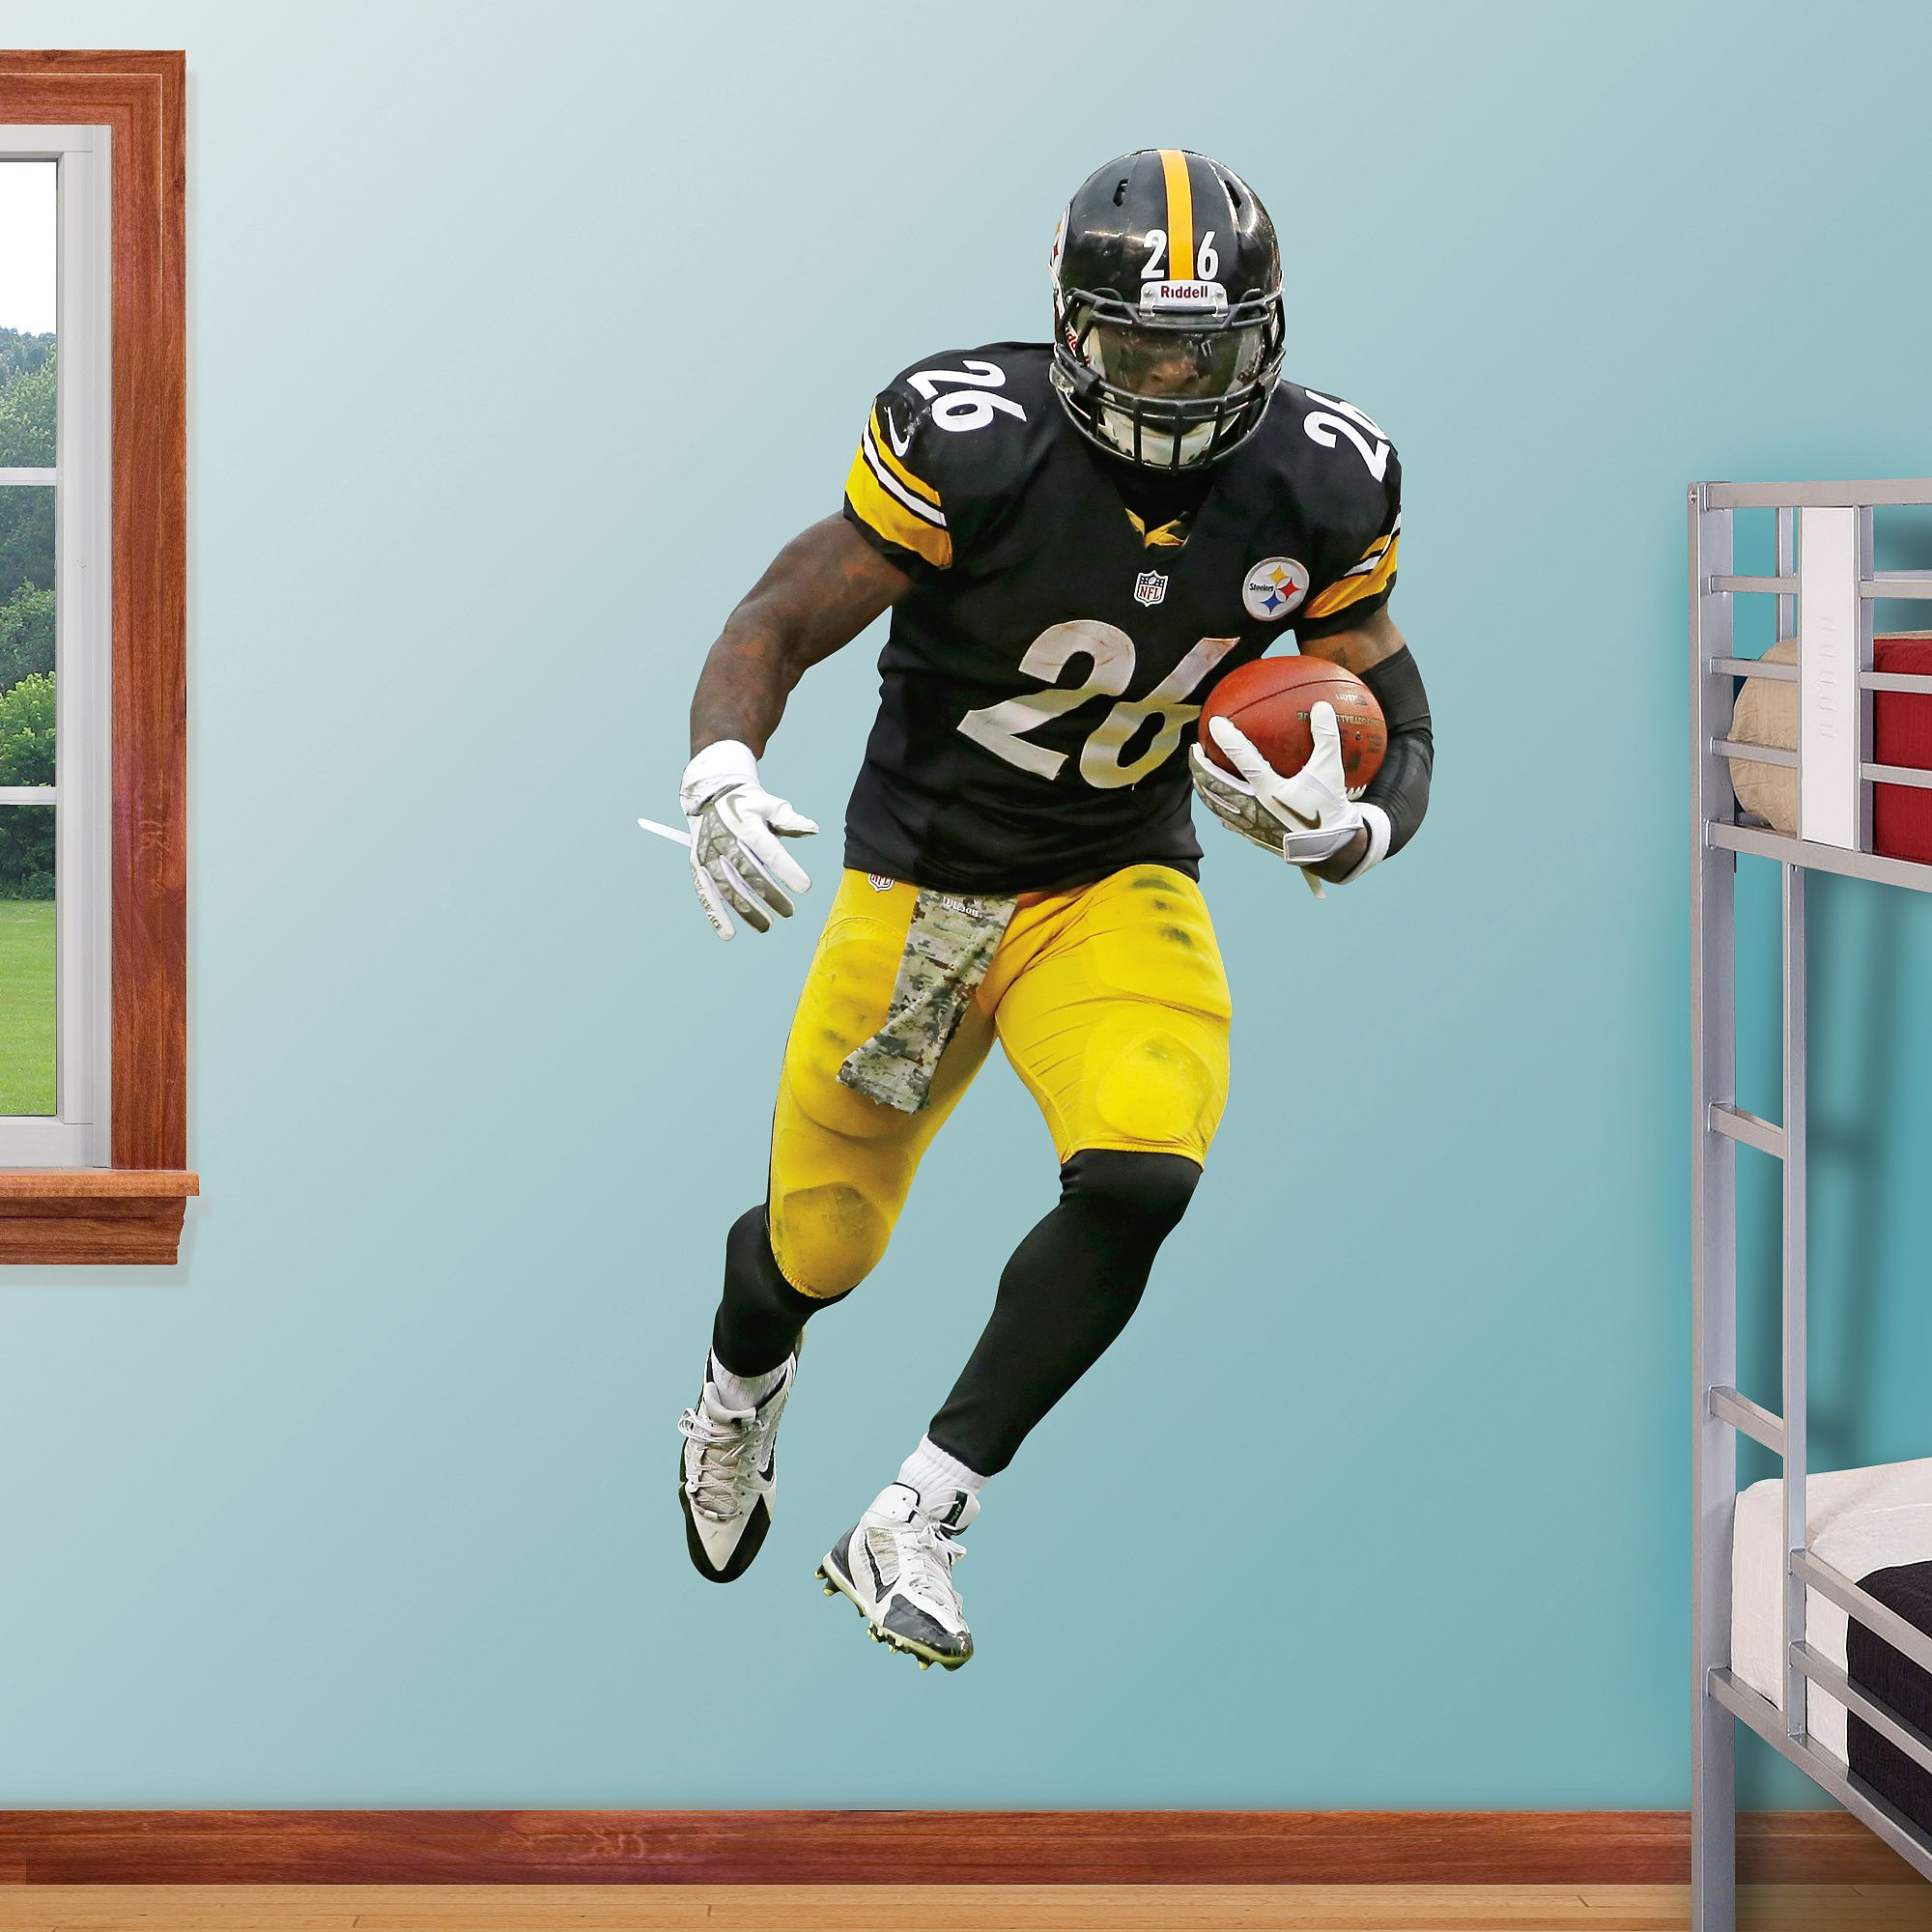 diy life size wall decals a fathead stays up on its own with a low